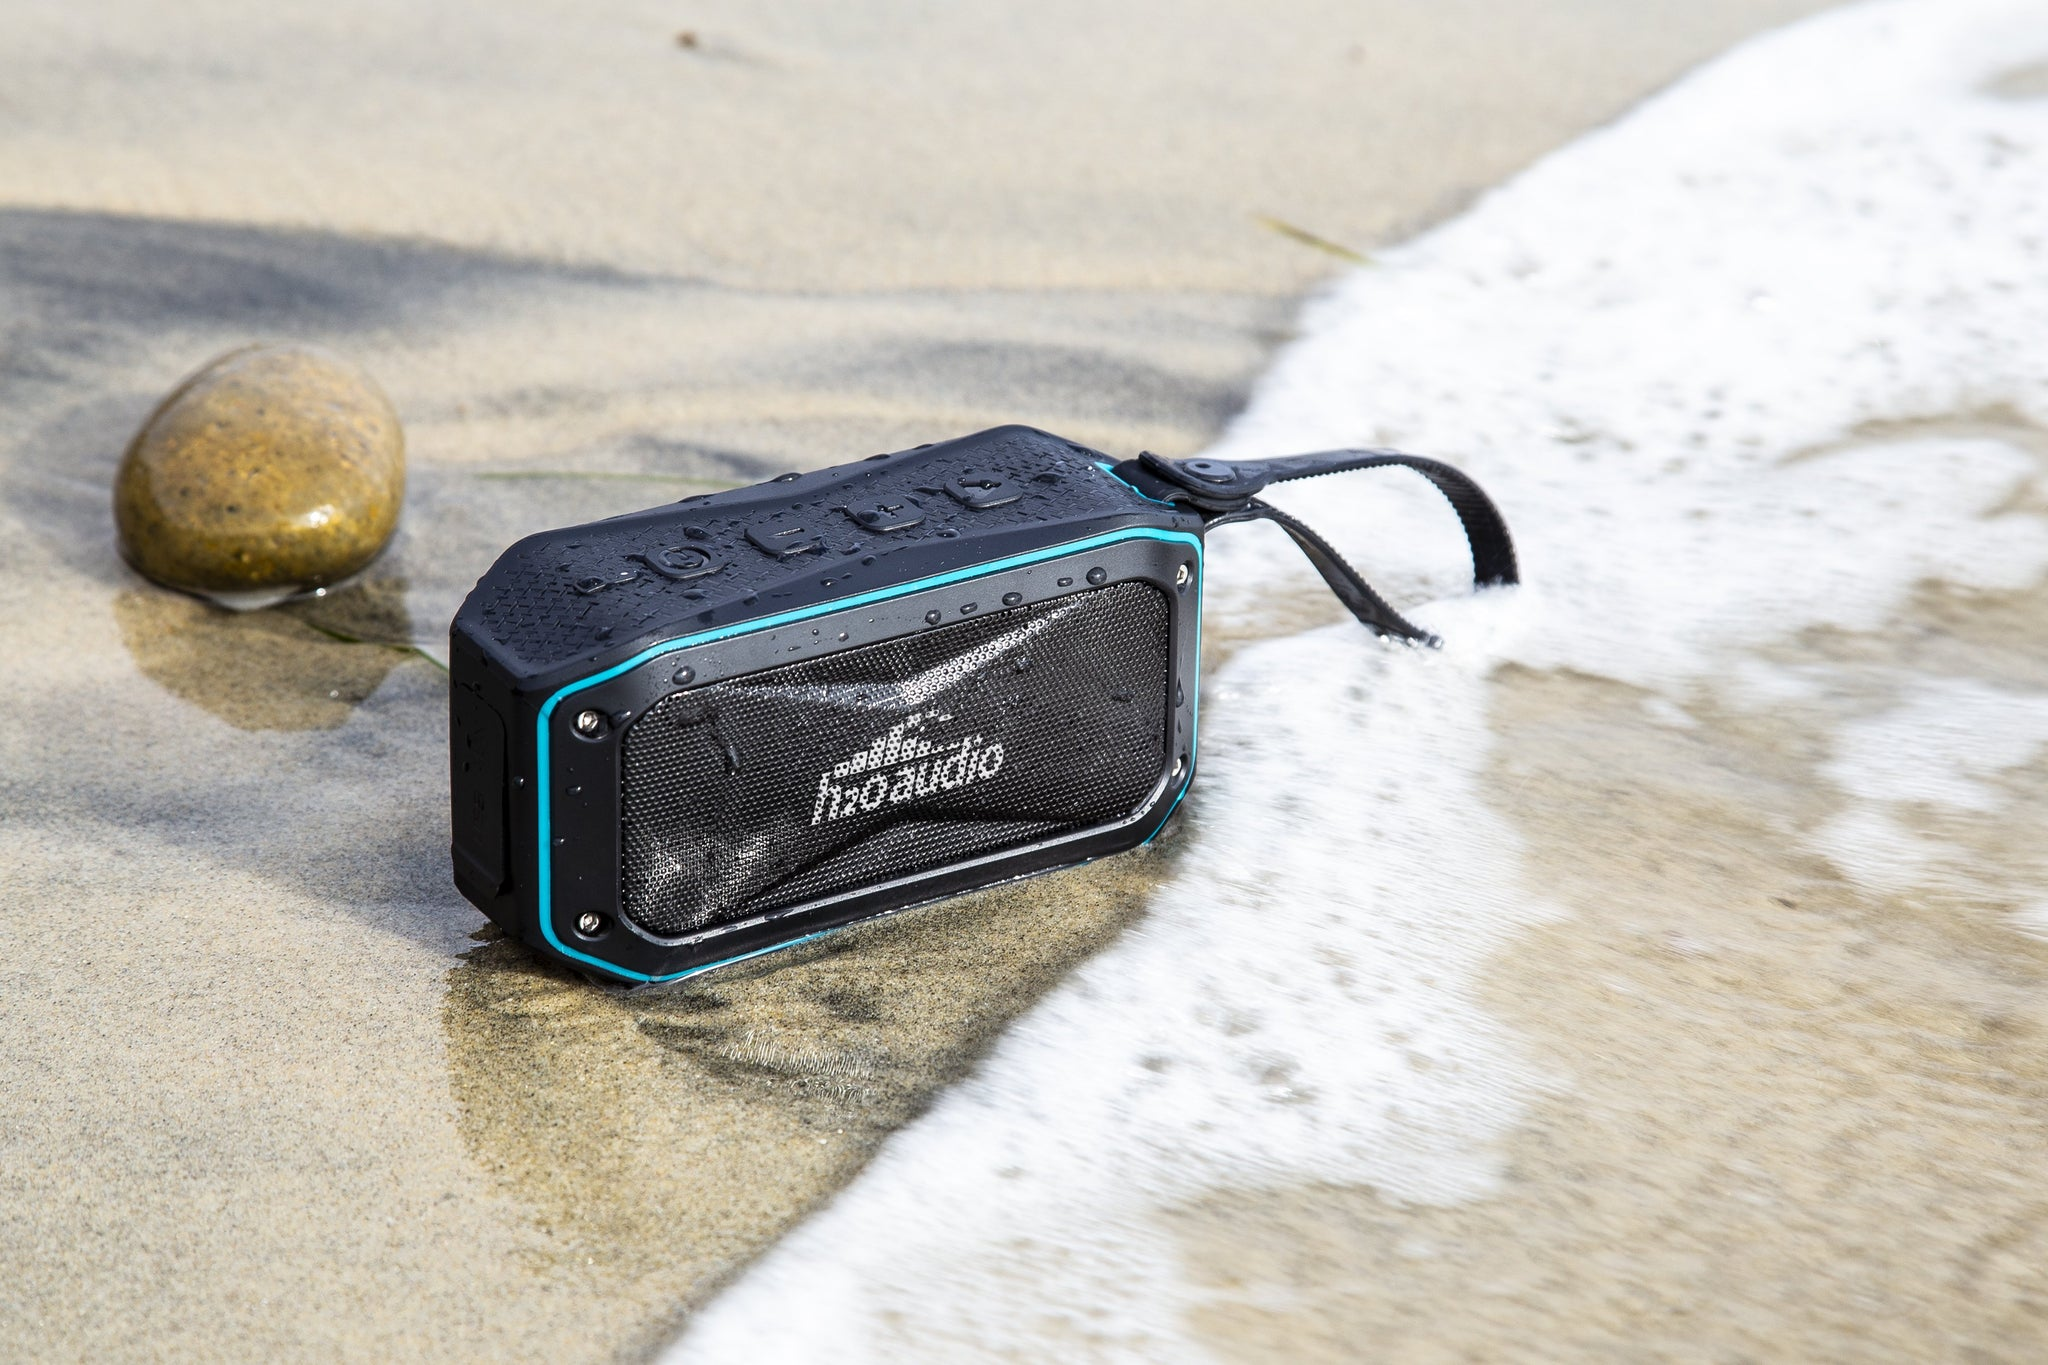 The Float is a portable Bluetooth speaker that is waterproof, making it perfect for the beach, pool or lake. It's made by H2O Audio, a company that specializes in waterproof headphones and accessories.